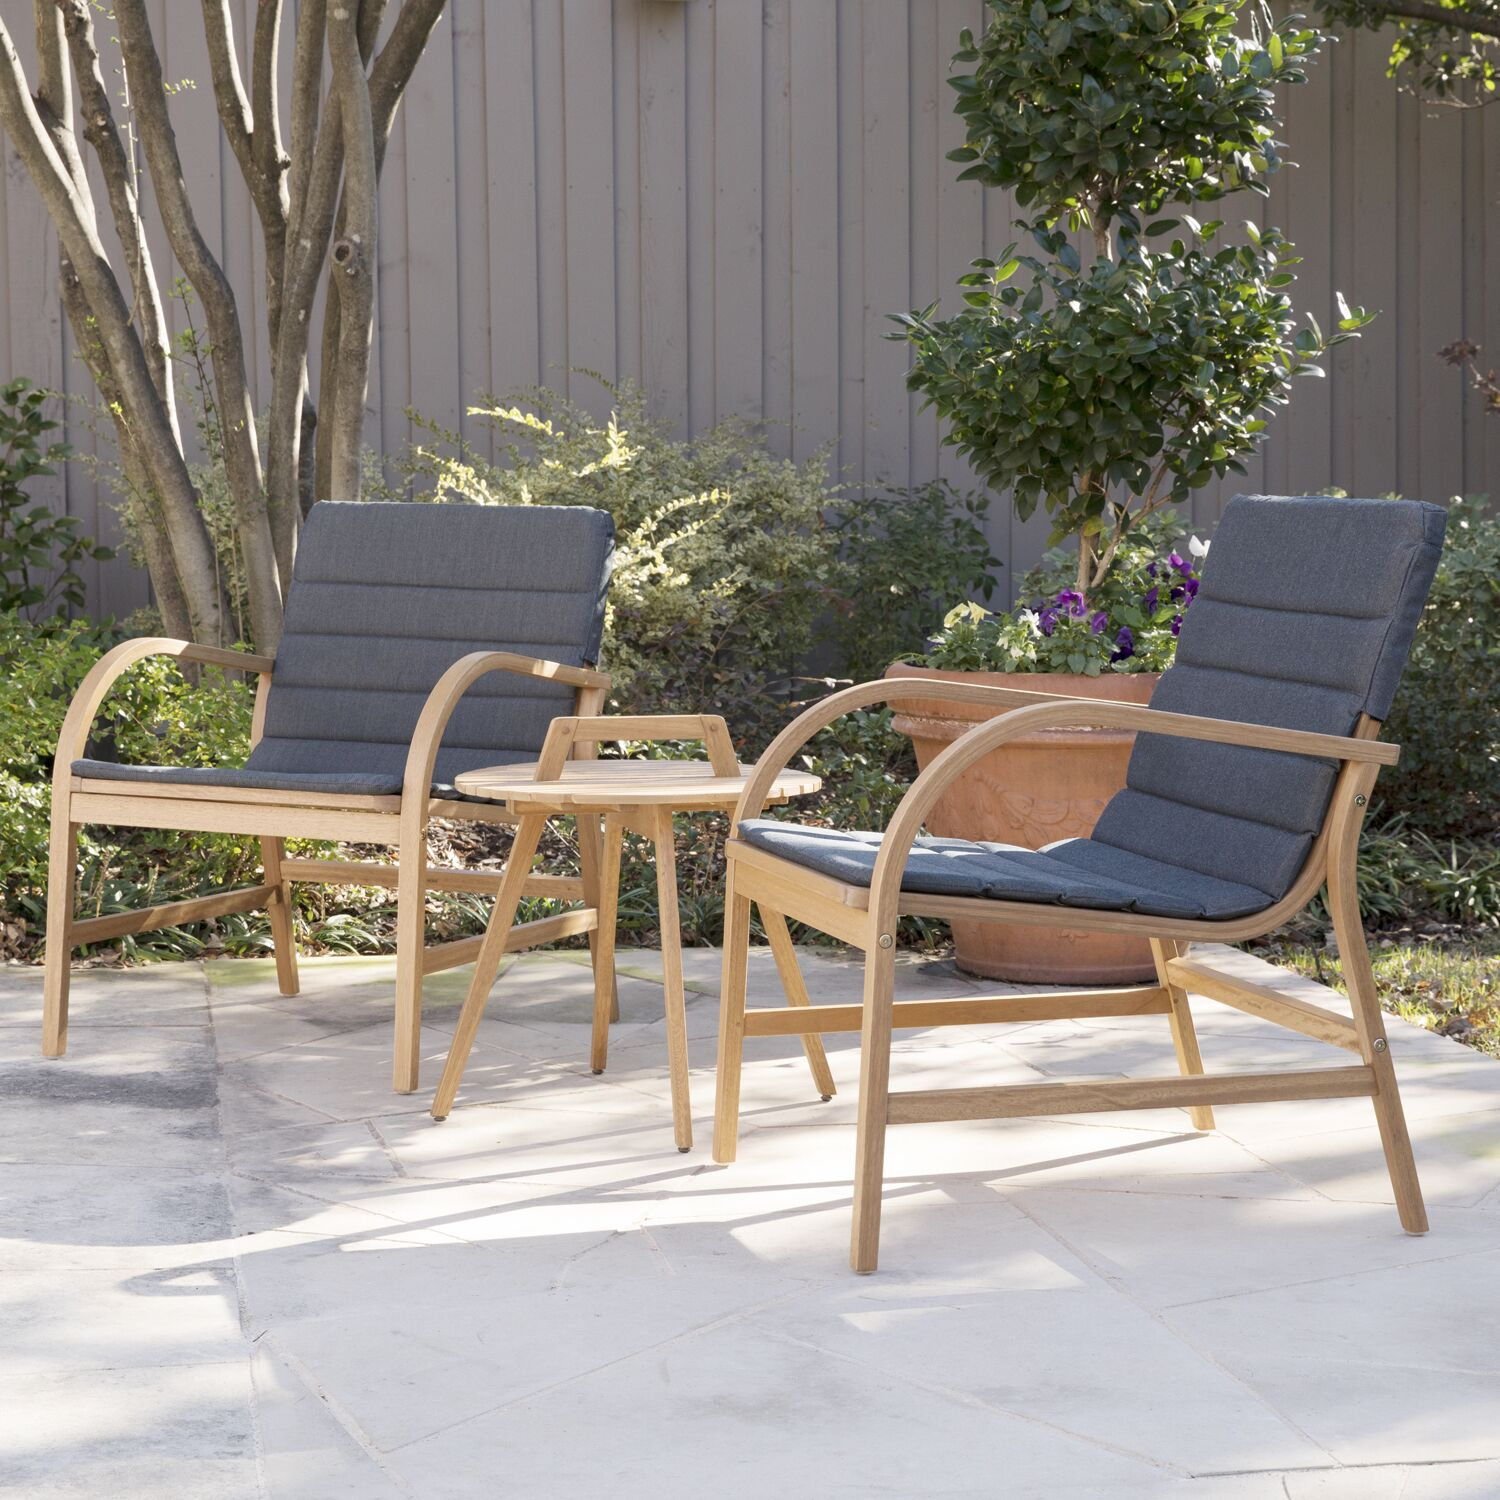 Chenier 3 Piece Outdoor Seating Group with Removable Cushions